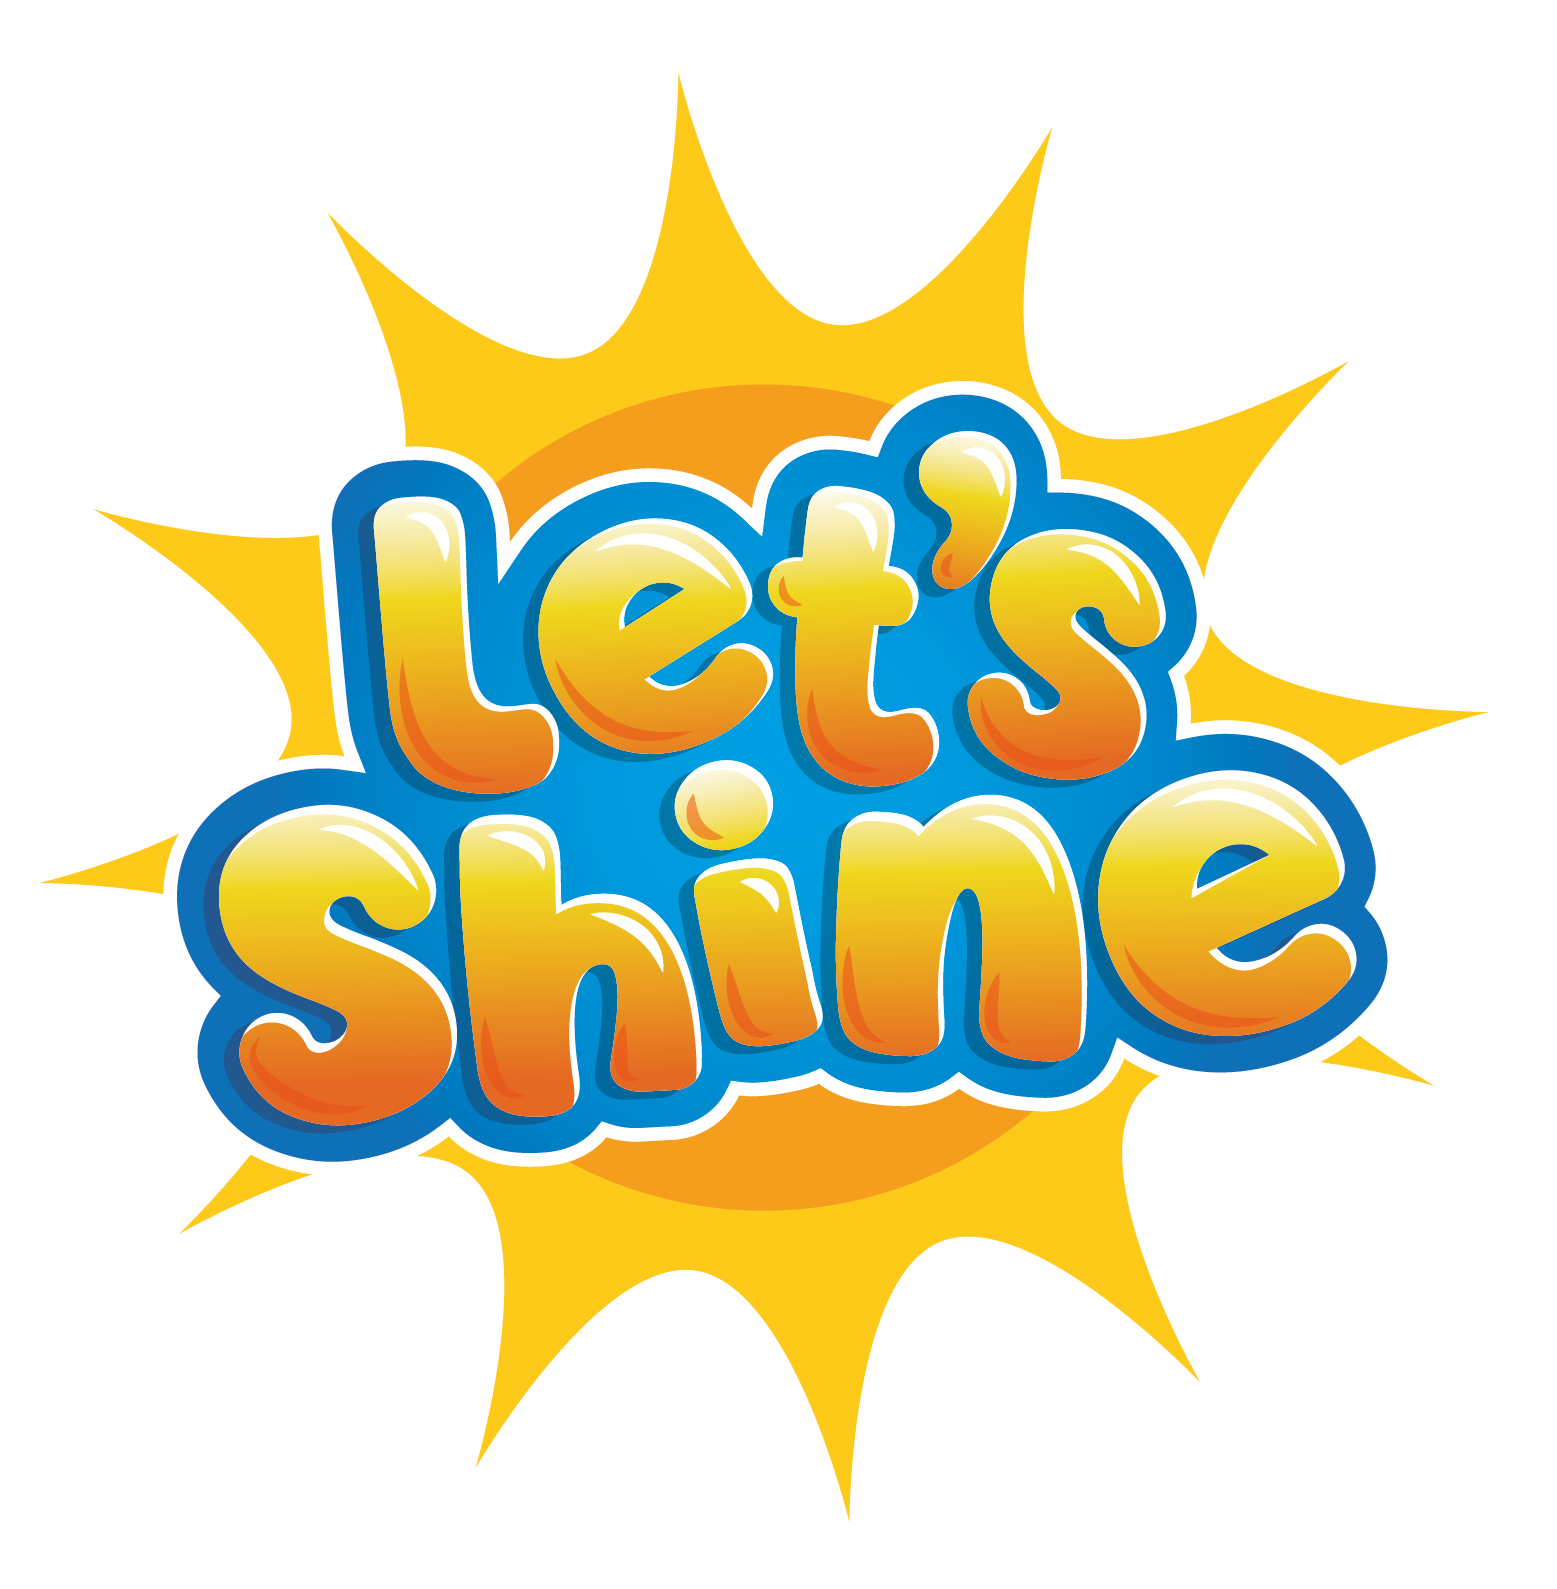 Our Brands - Lets's Shine